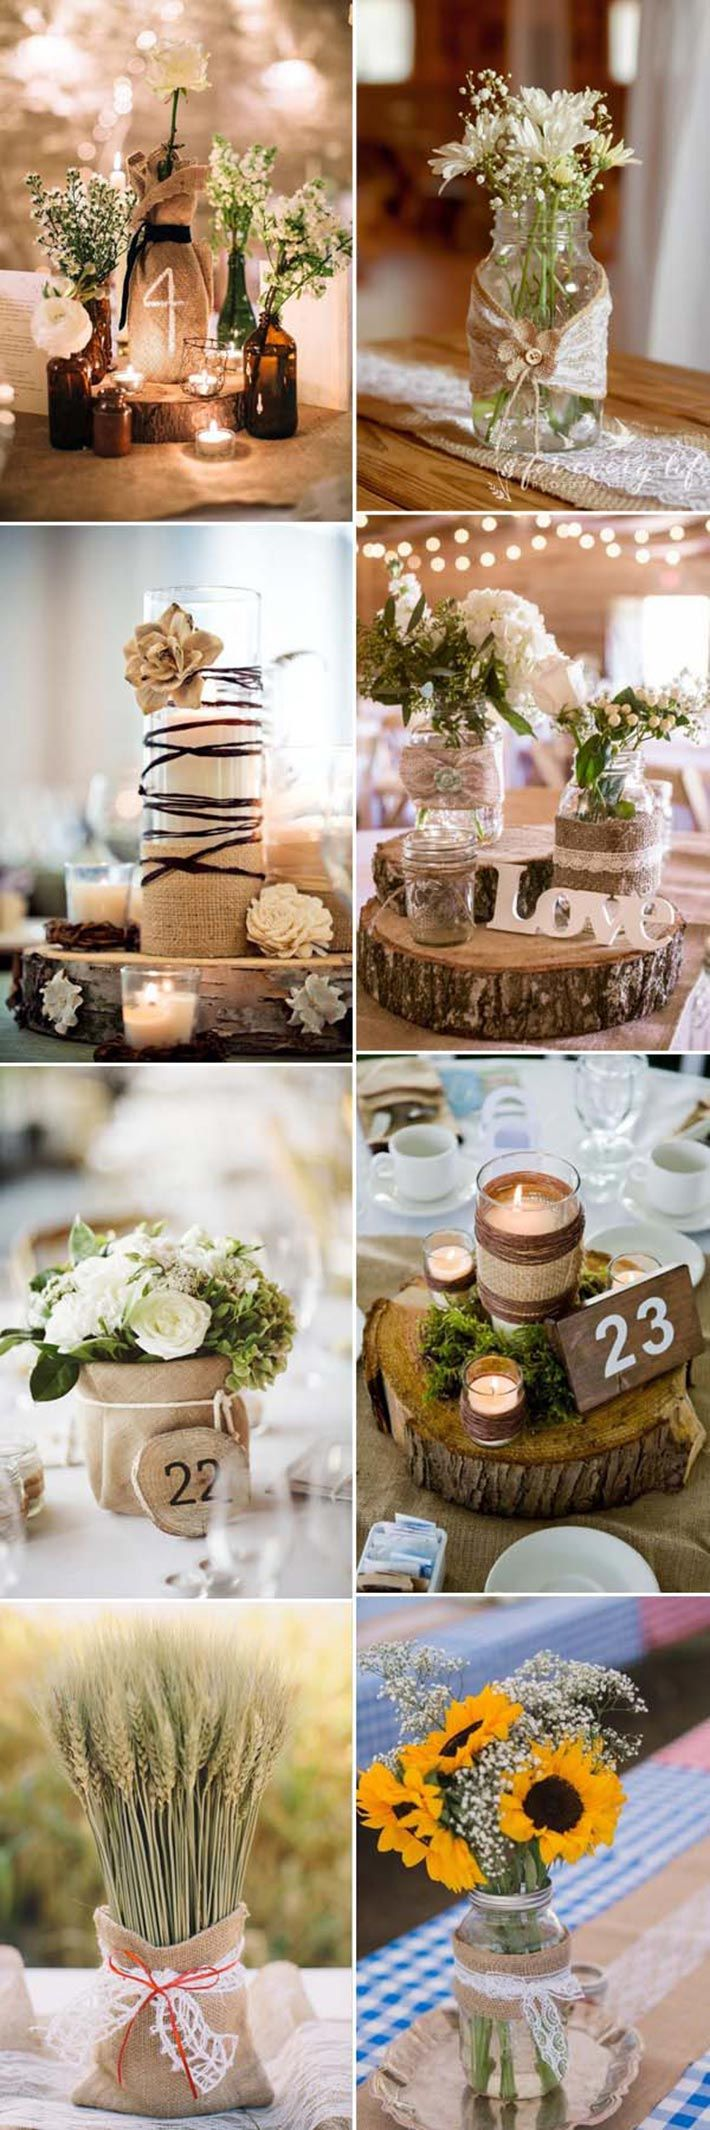 The Most Ccomplete Burlap Rustic Wedding Ideas For Your Inspiration Burlap is one of the hottest trends out there right now for rustic and country weddings